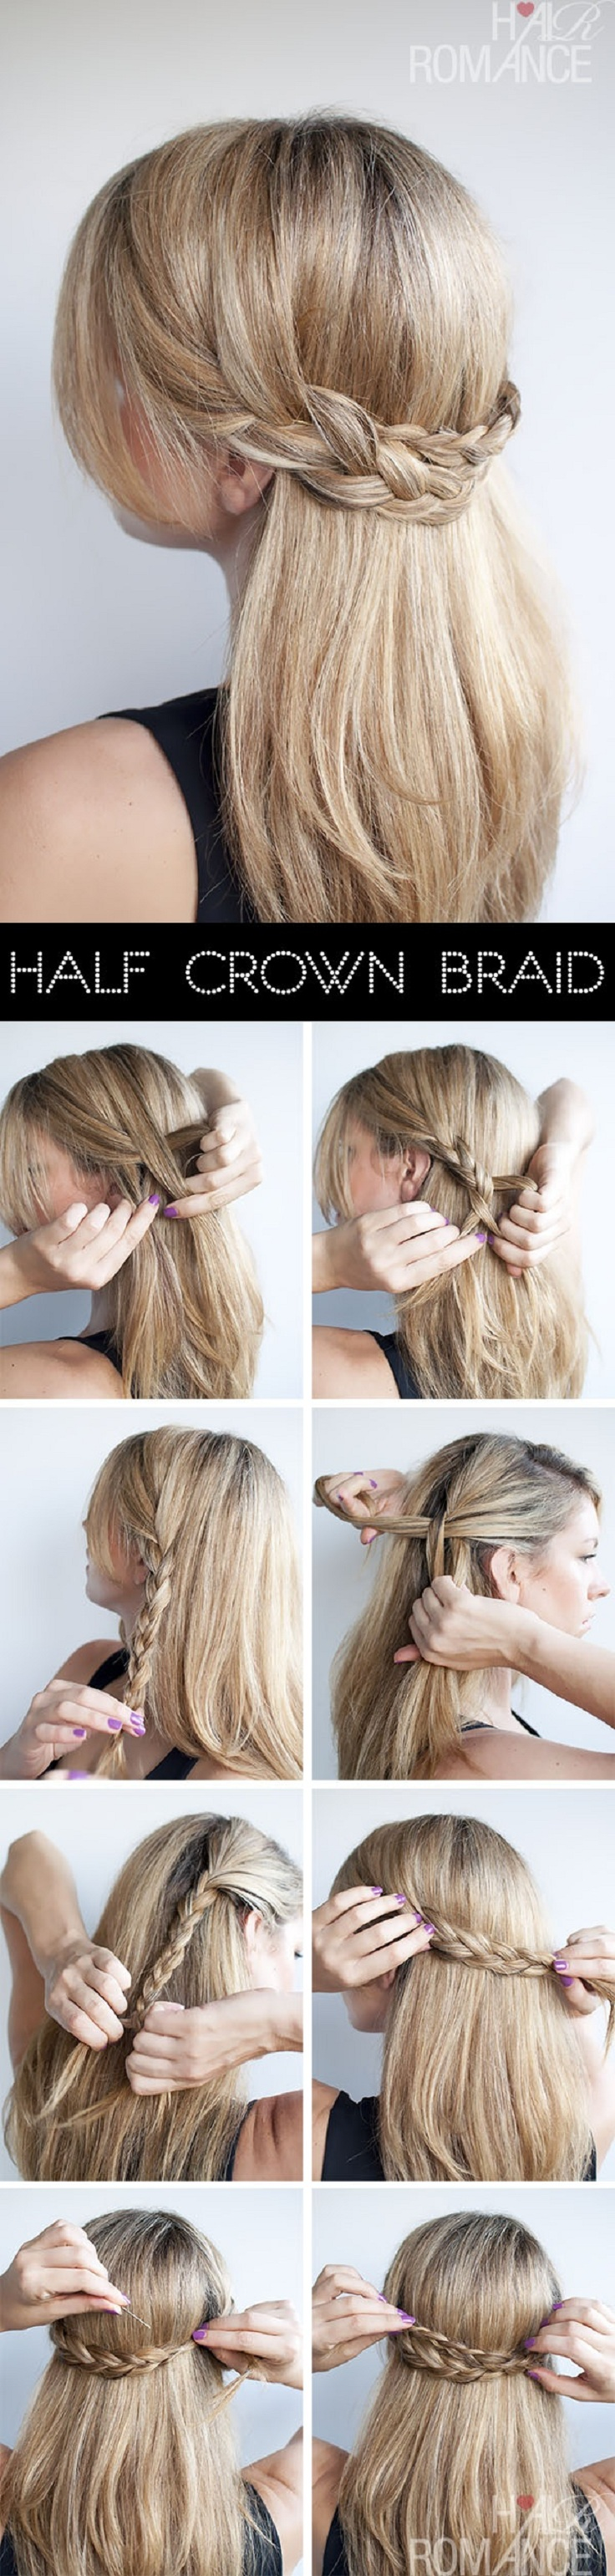 Astonishing Top 10 Hair Braid Tutorials Top Inspired Short Hairstyles Gunalazisus